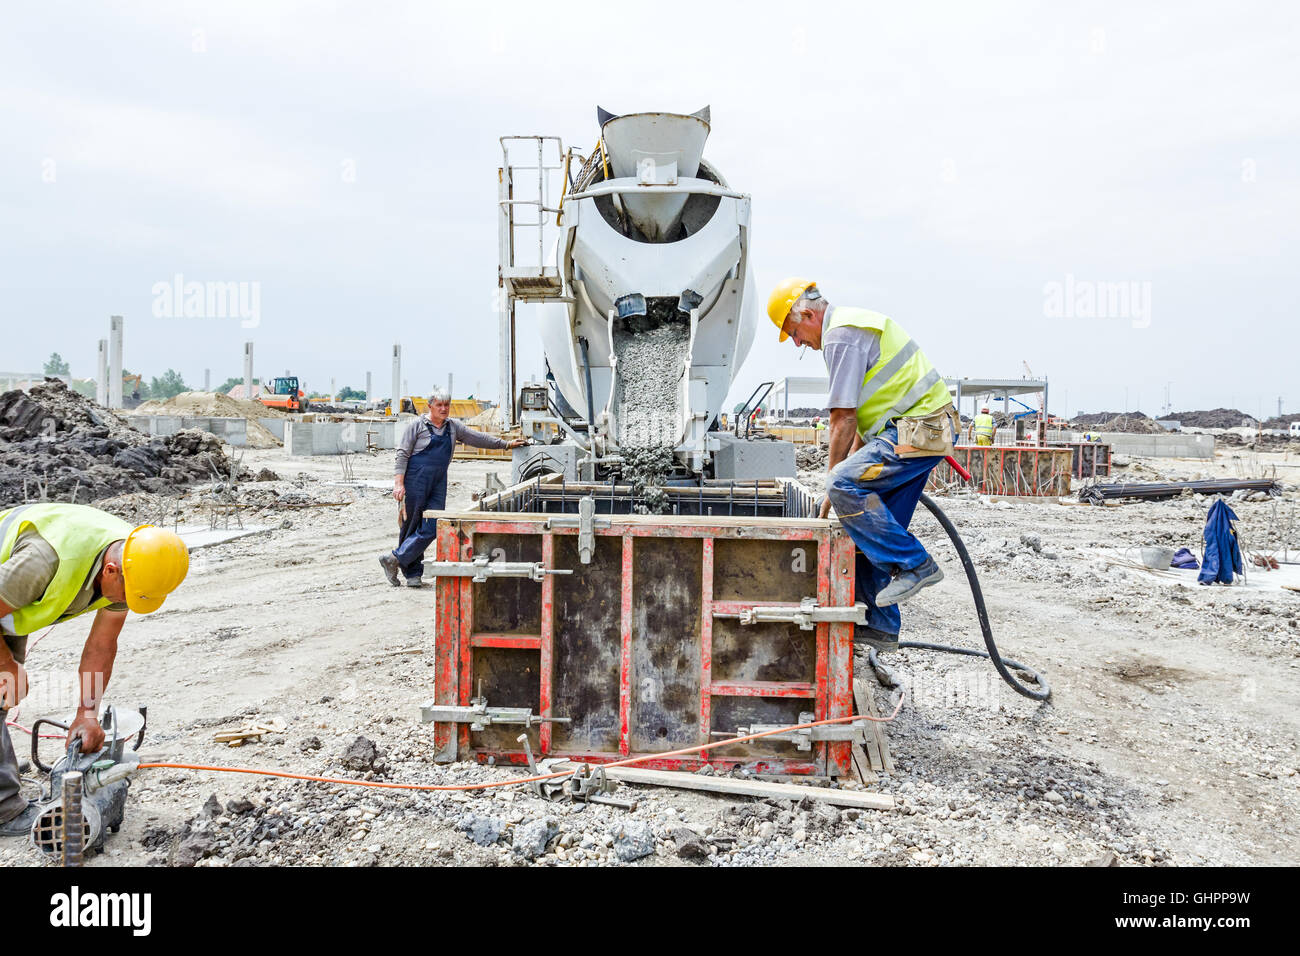 cement mixer pouring stockfotos cement mixer pouring bilder seite 2 alamy. Black Bedroom Furniture Sets. Home Design Ideas